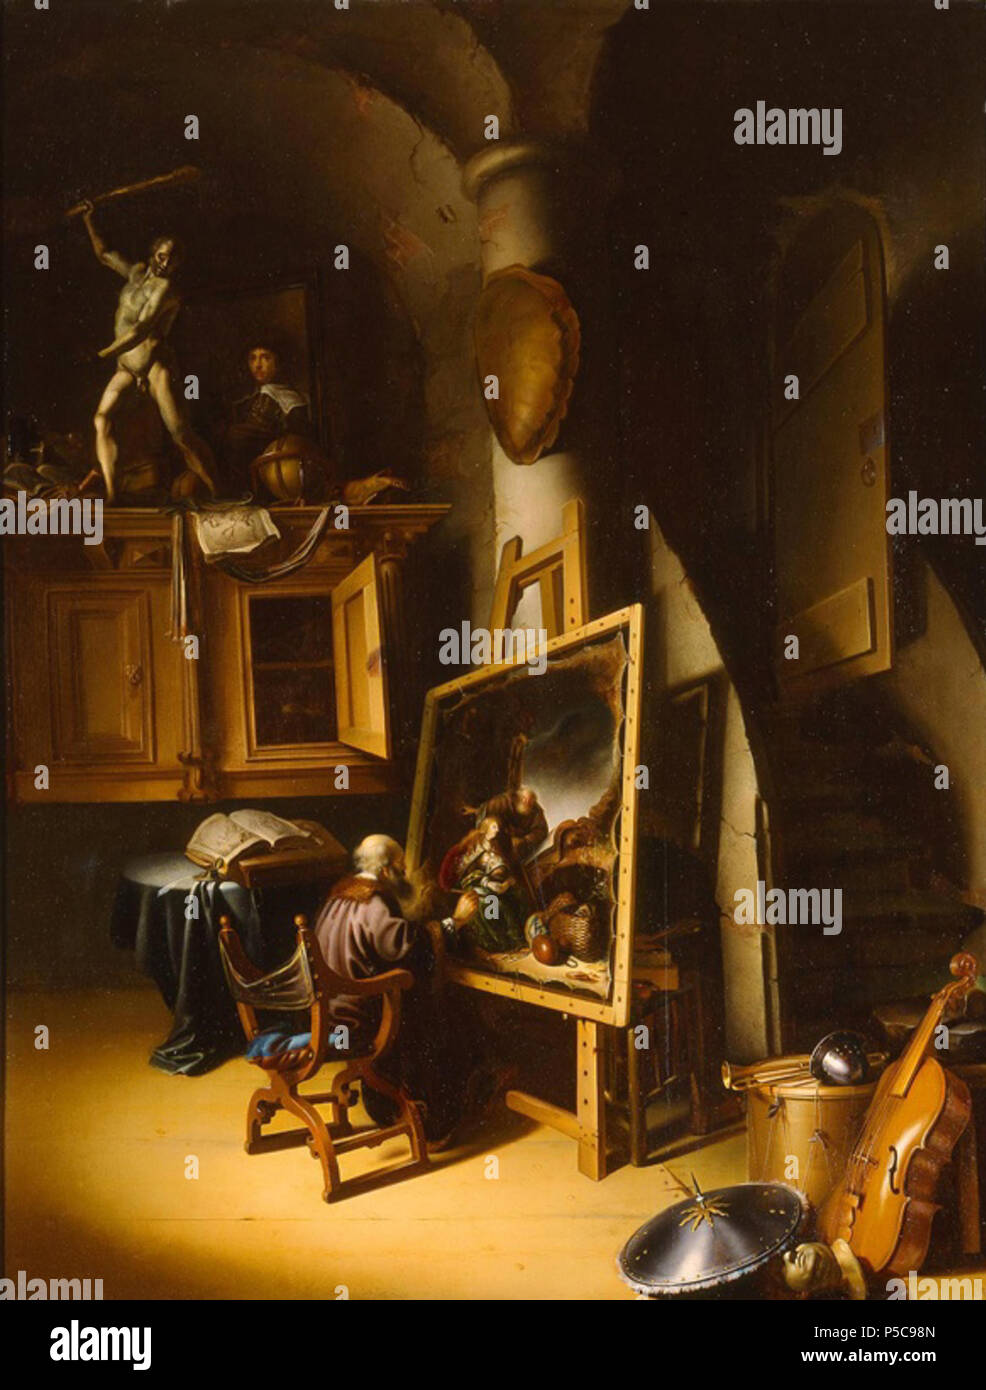 N/A.  English: Adriaen van Gaesbeeck - An Artist in His Studio. Attributed to Adriaen van Gaesbeeck (Dutch, 1621/1622-1650) An Artist in His Studio, ca. 1645 Oil on panel 36 1/2 x 29 1/4 in. (92.71 x 74.3 cm) Gift of Friends of Art M1989.6 Photo credit P. Richard Eells. Milwaukee Art Museum . 6 May 2011, 11:21:49. N/A 63 Adriaen van Gaesbeeck - An Artist in His Studio - Stock Image